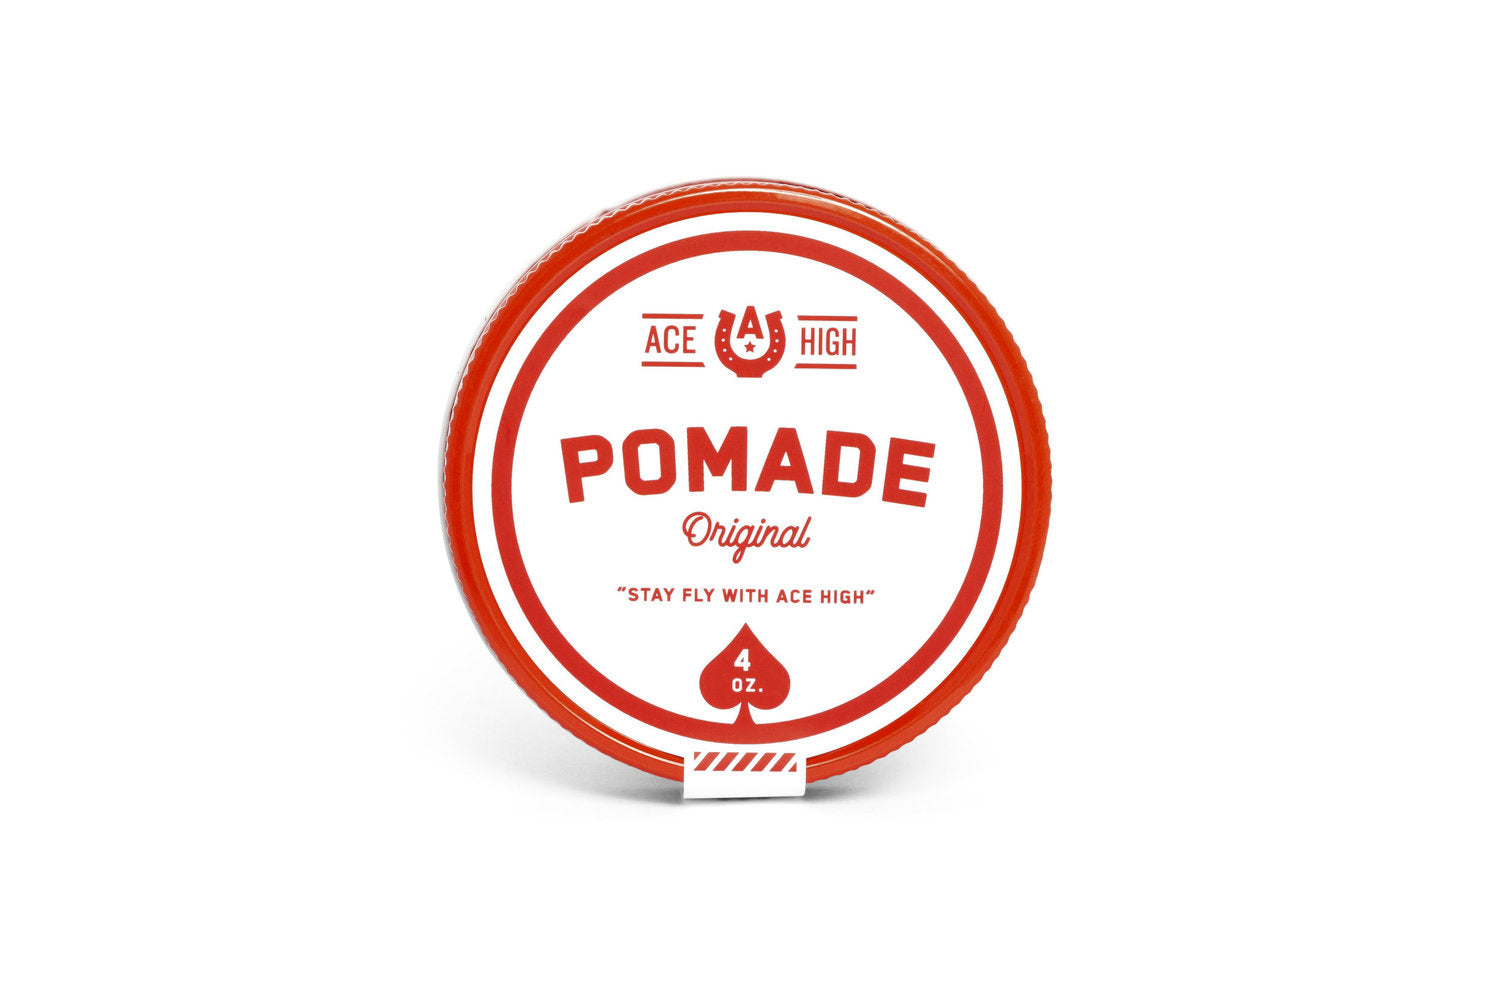 Ace high original pomade front view picture